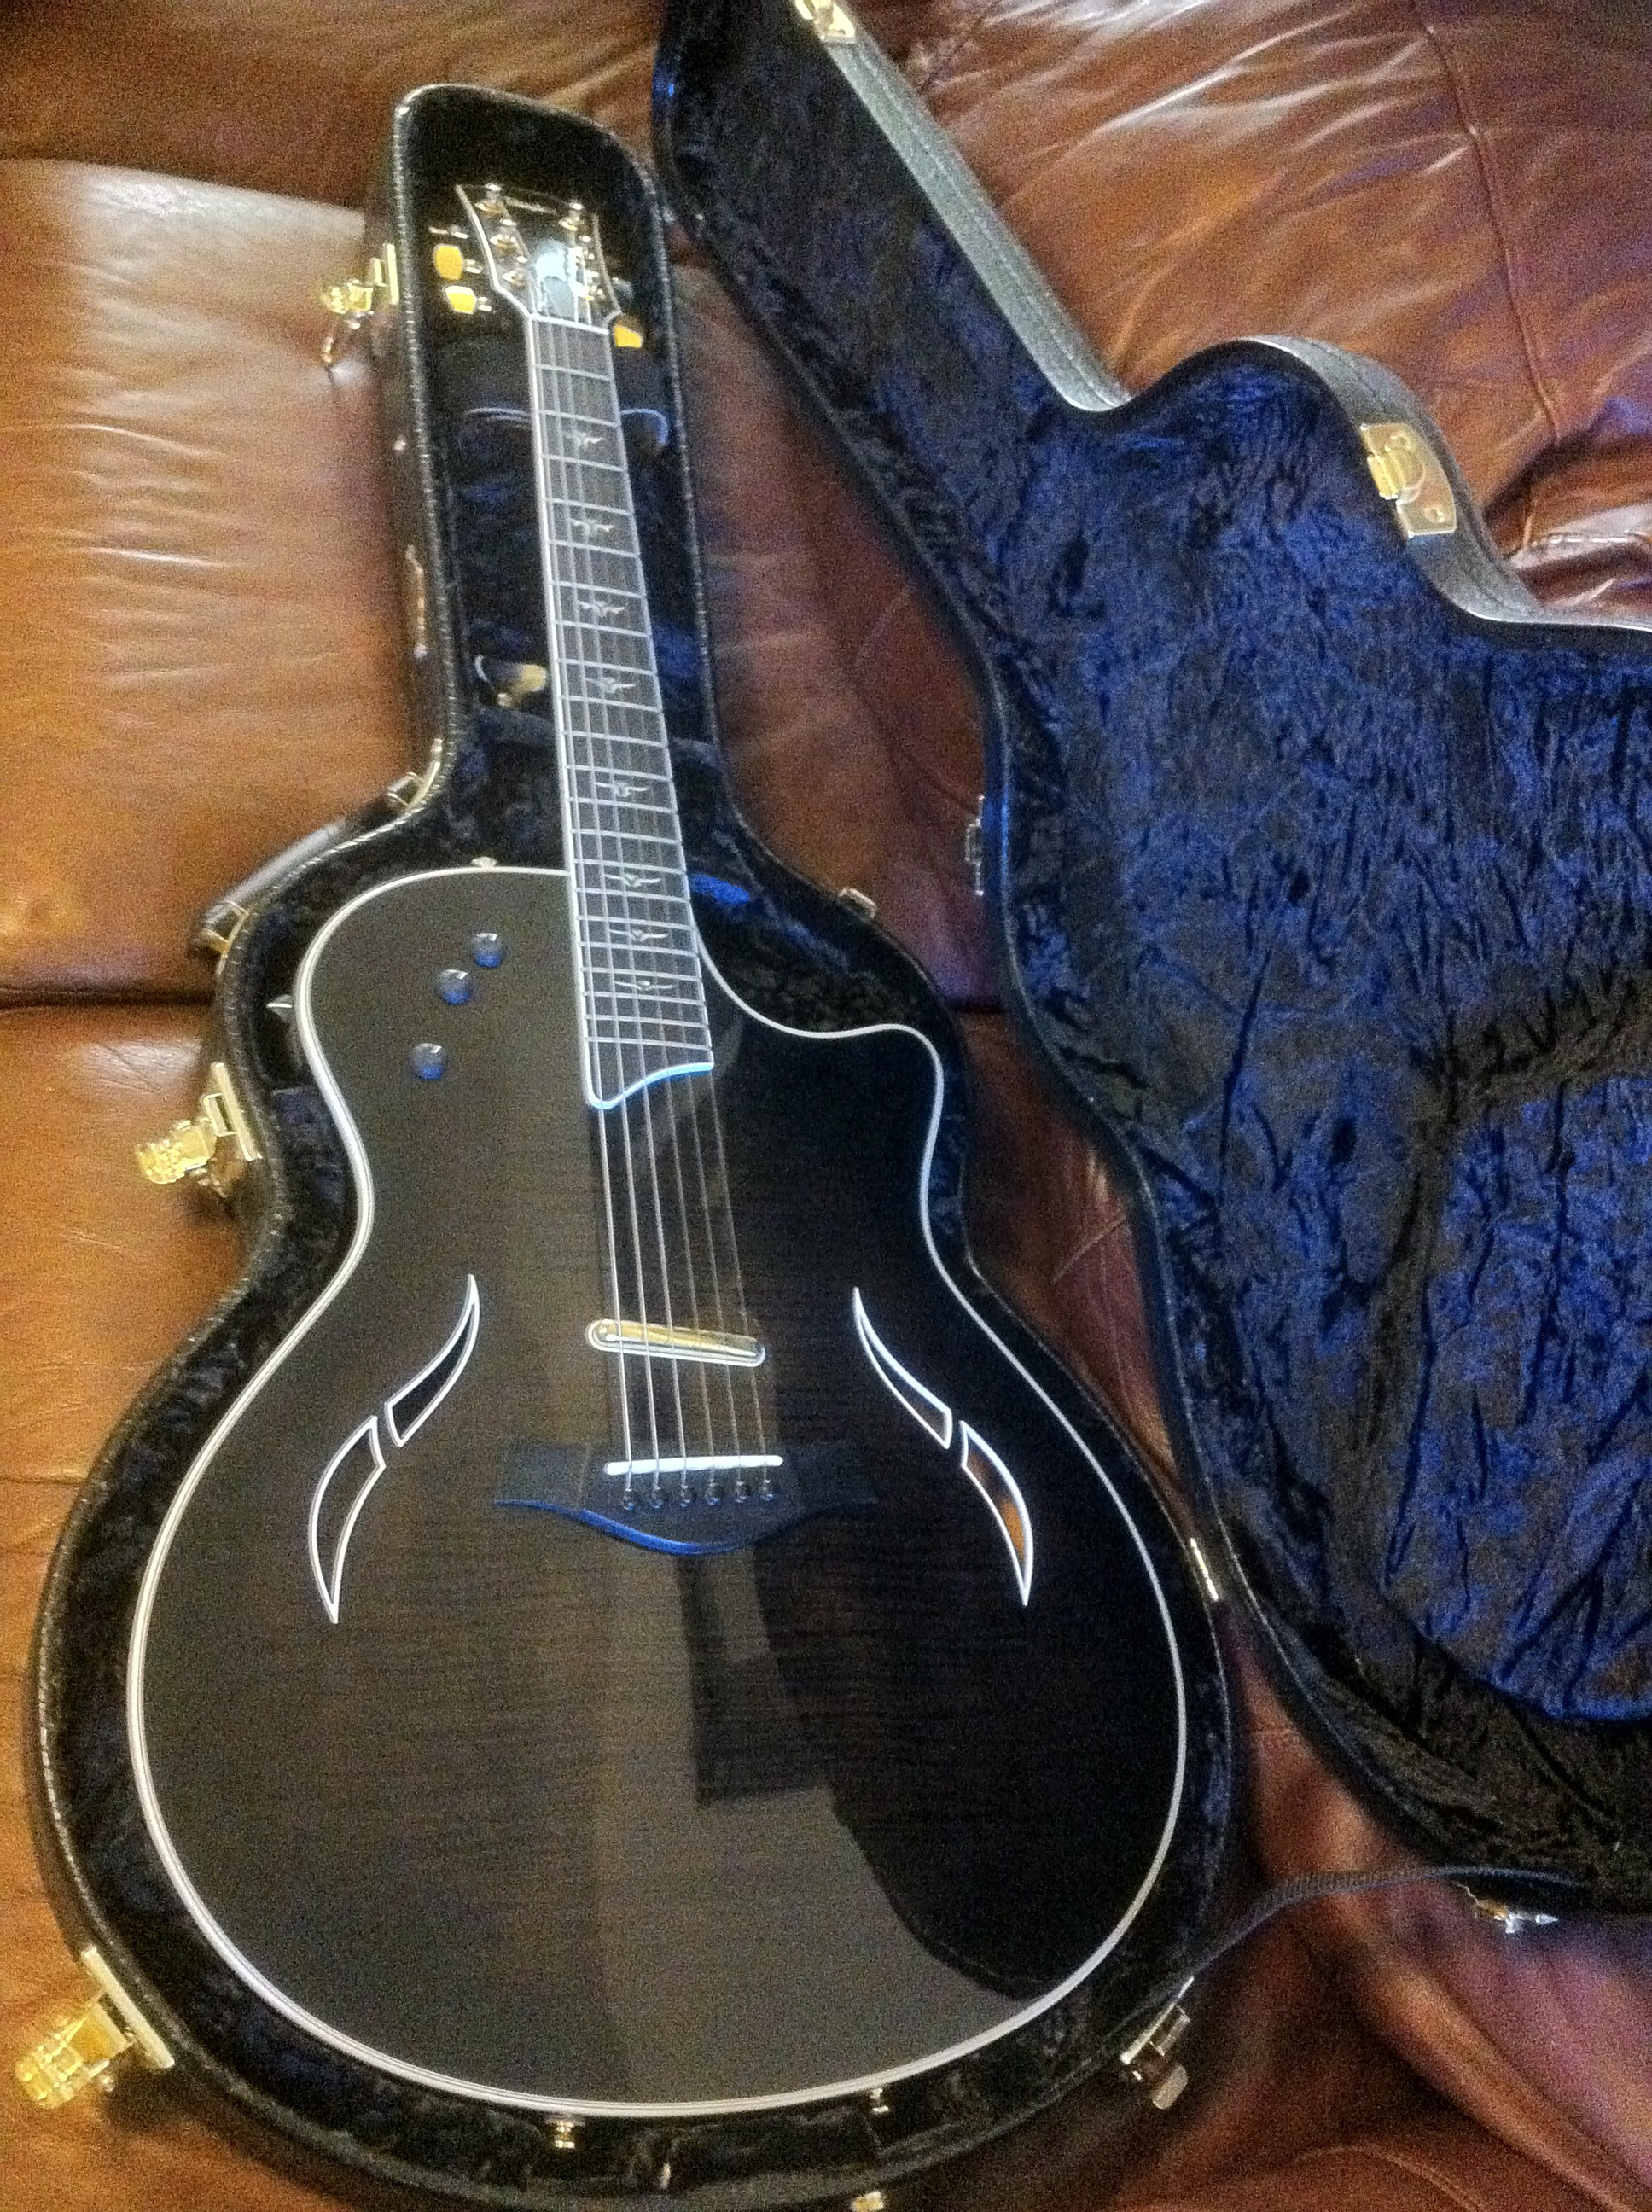 I m selling my Taylor T5 C1 Guitar I bought it five years ago it s a late 2006 model played it at a few churches but mostly stored it in it s hardshell